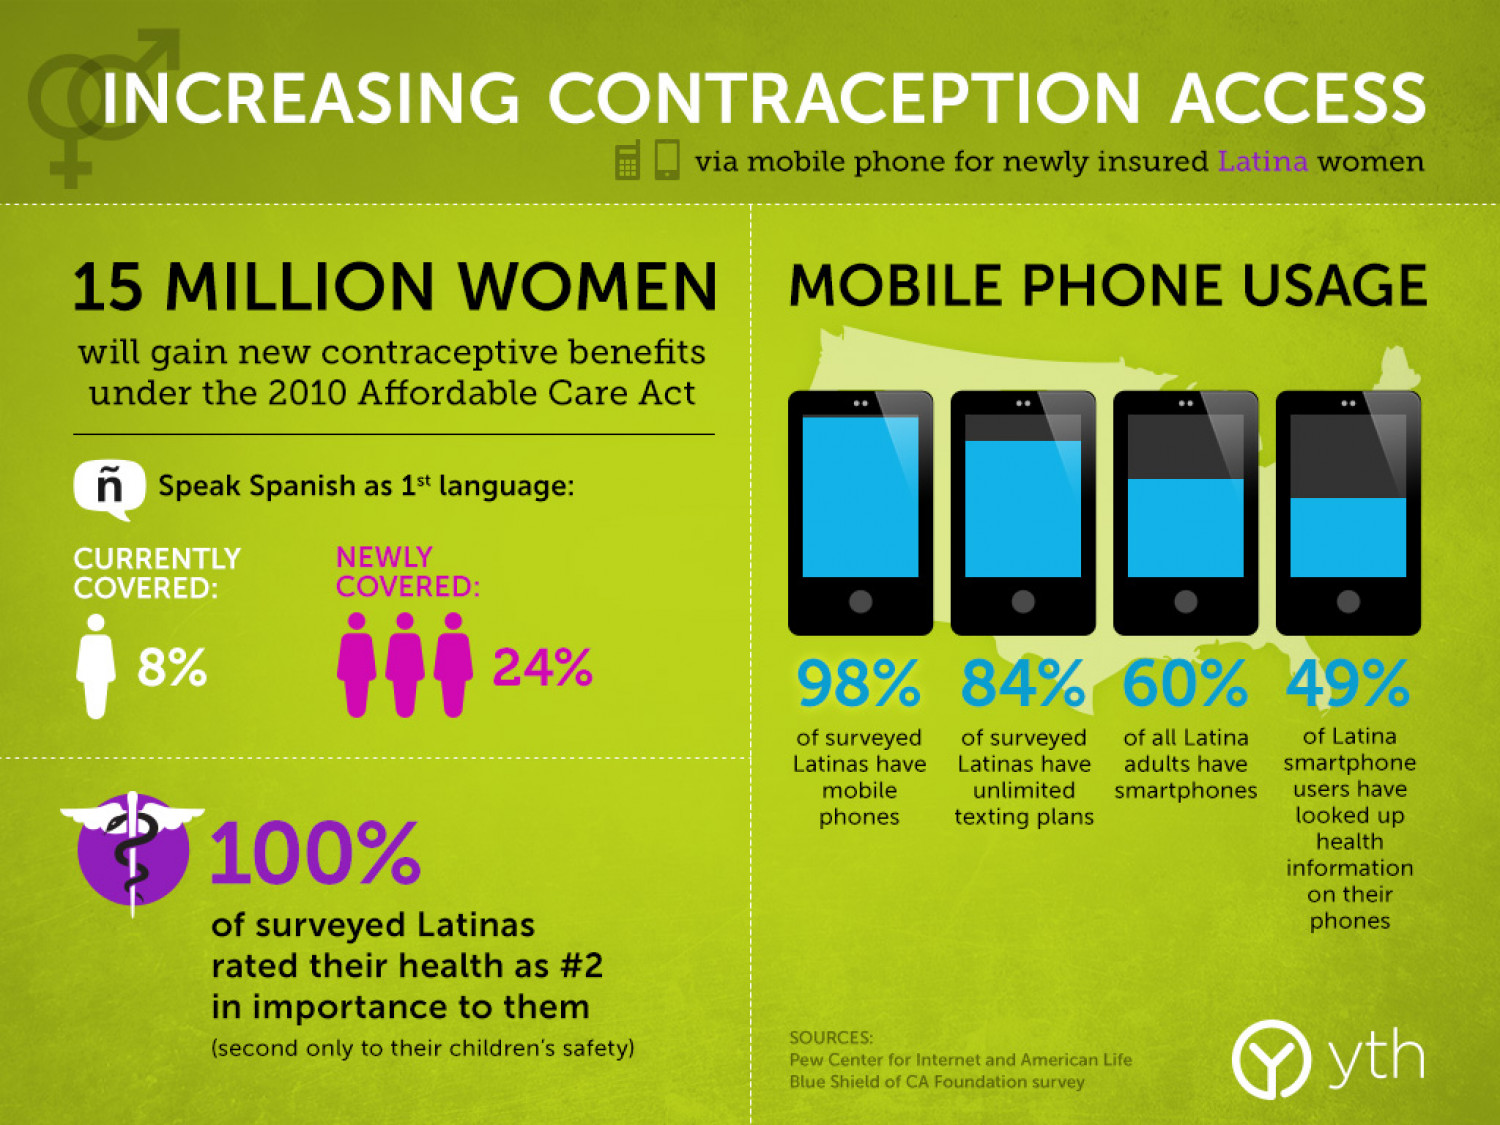 Increasing Contraception Access Infographic